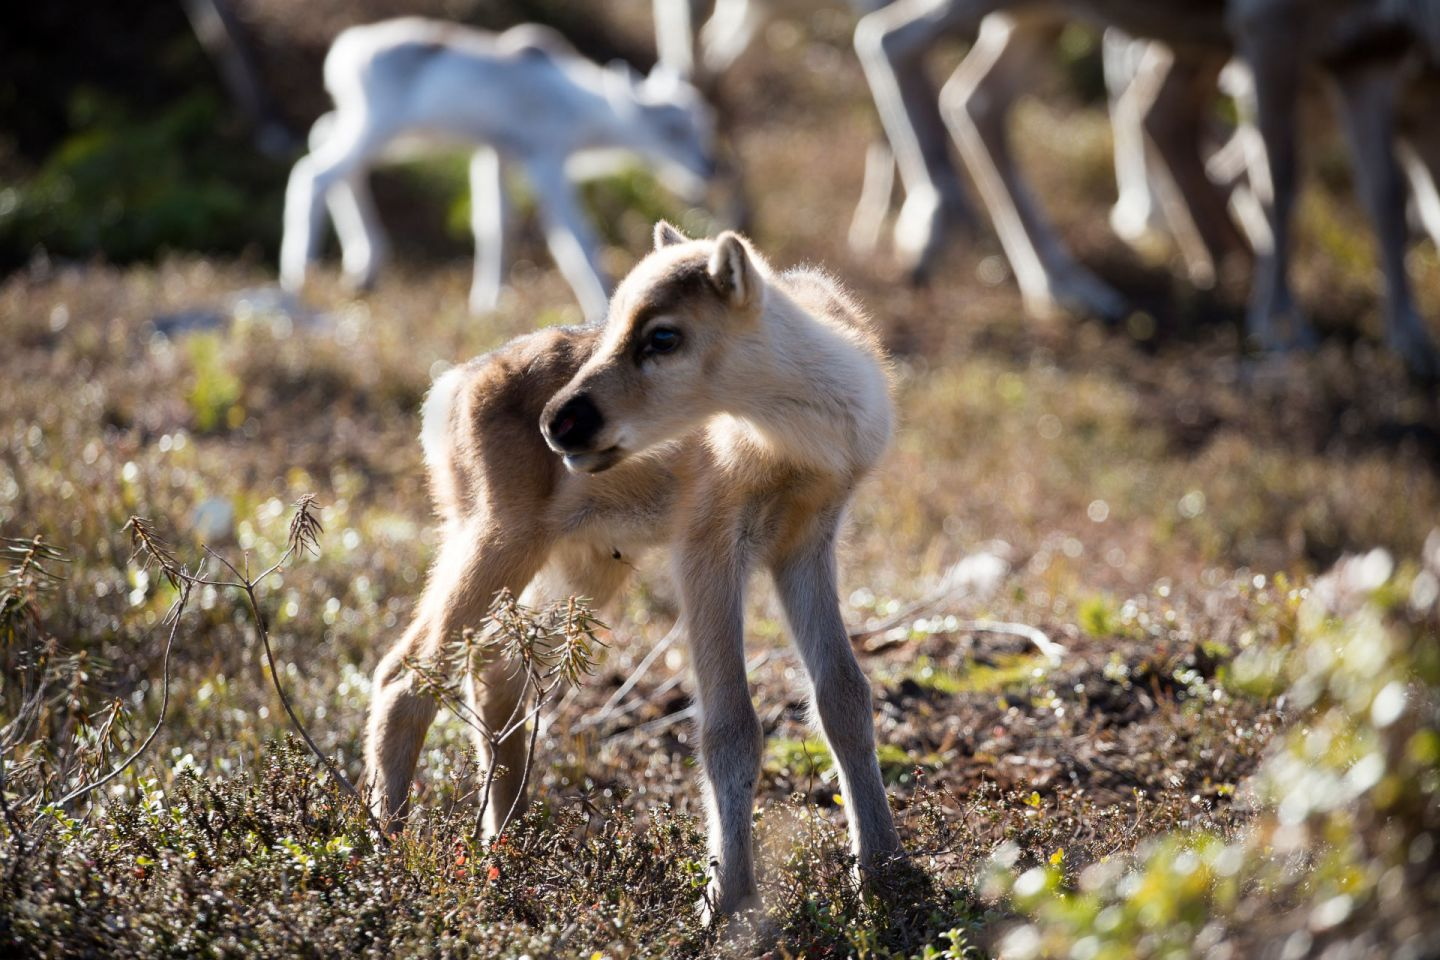 A baby reindeer from Finnish Lapland